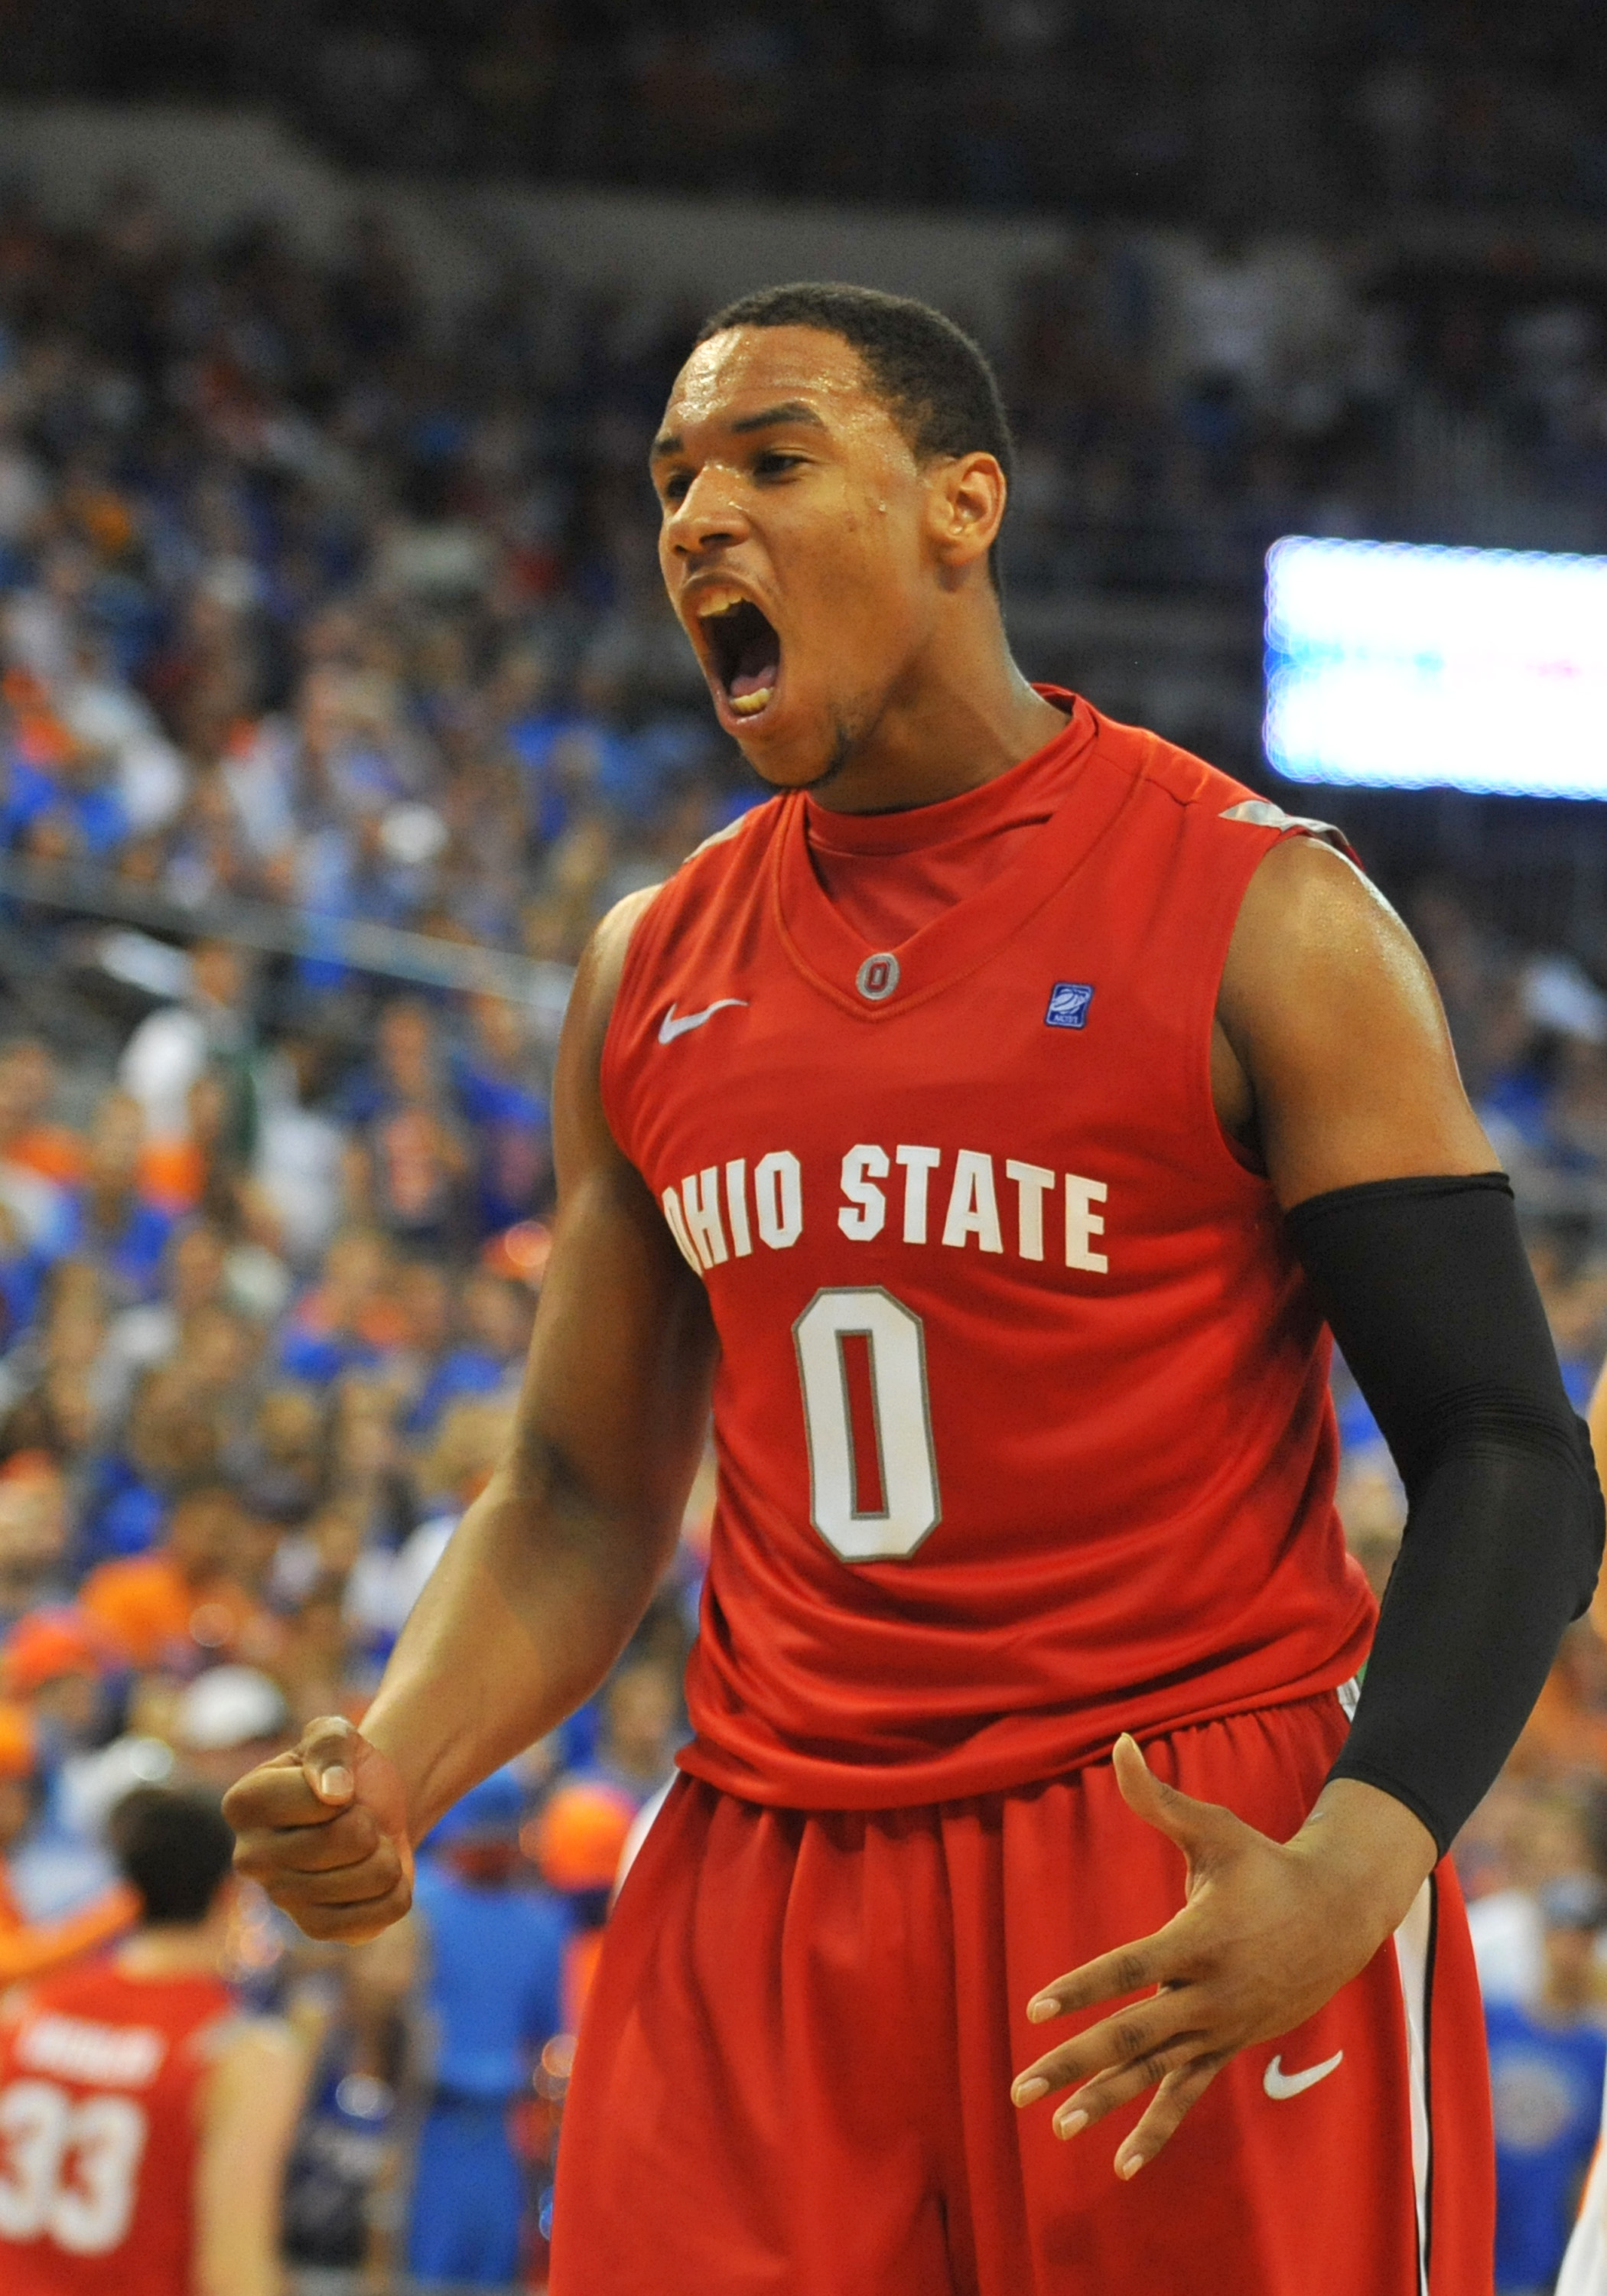 Is Sullinger Ready to Go Undefeated?